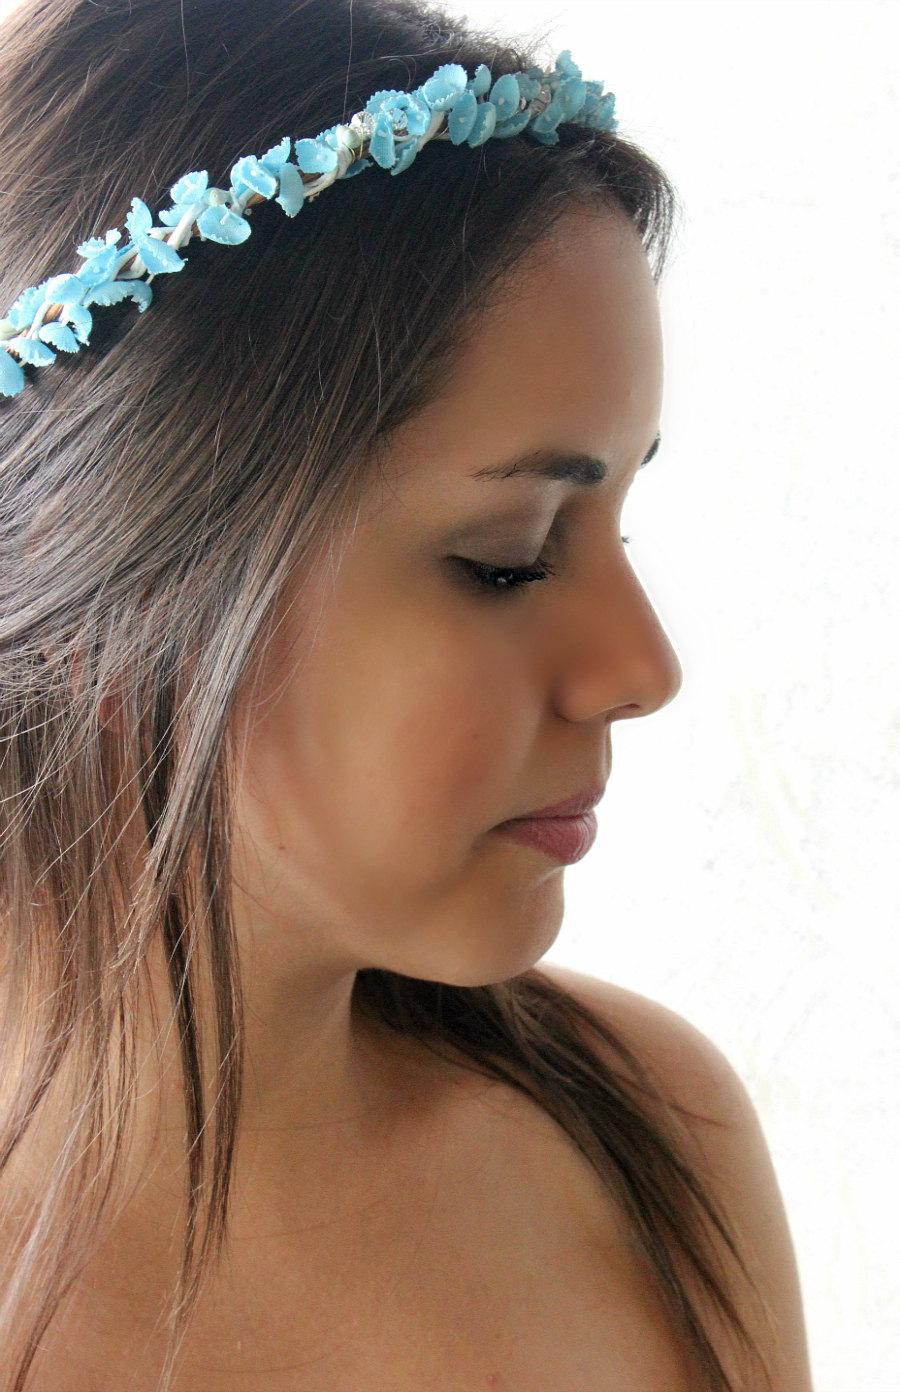 Lilly of the valley floral crown flower crown something blue lilly of the valley floral crown flower crown something blue flower hair crown wedding bohemian bridal headpiece izmirmasajfo